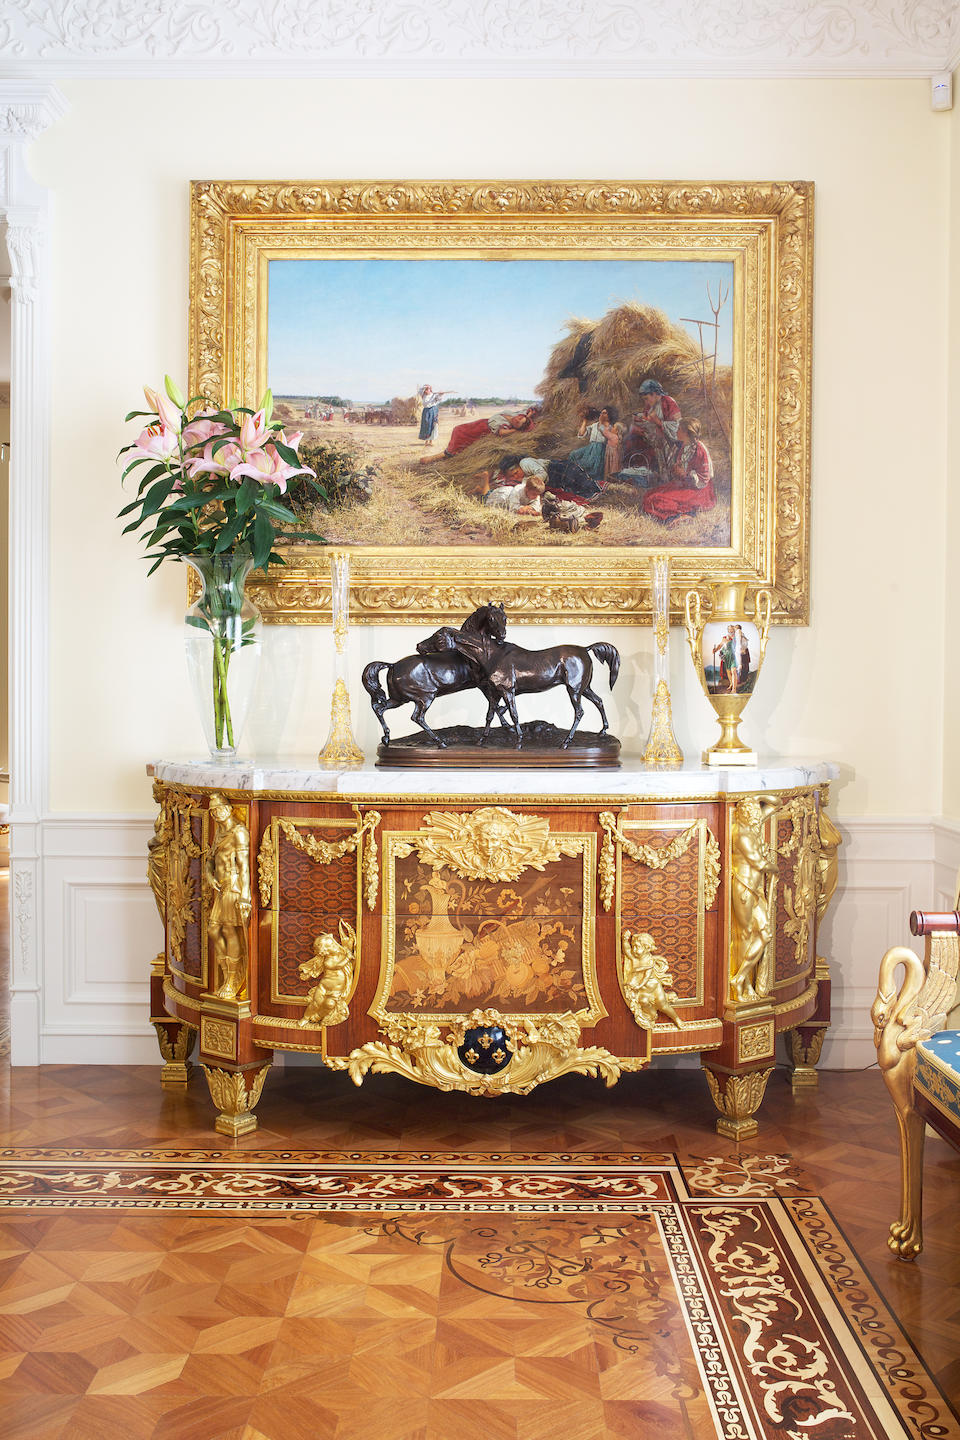 A fine French early 20th century mahogany, fruitwood marquetry and gilt bronze mounted commode in the Louis XVI style, after the original by Jean-Henri Reisener